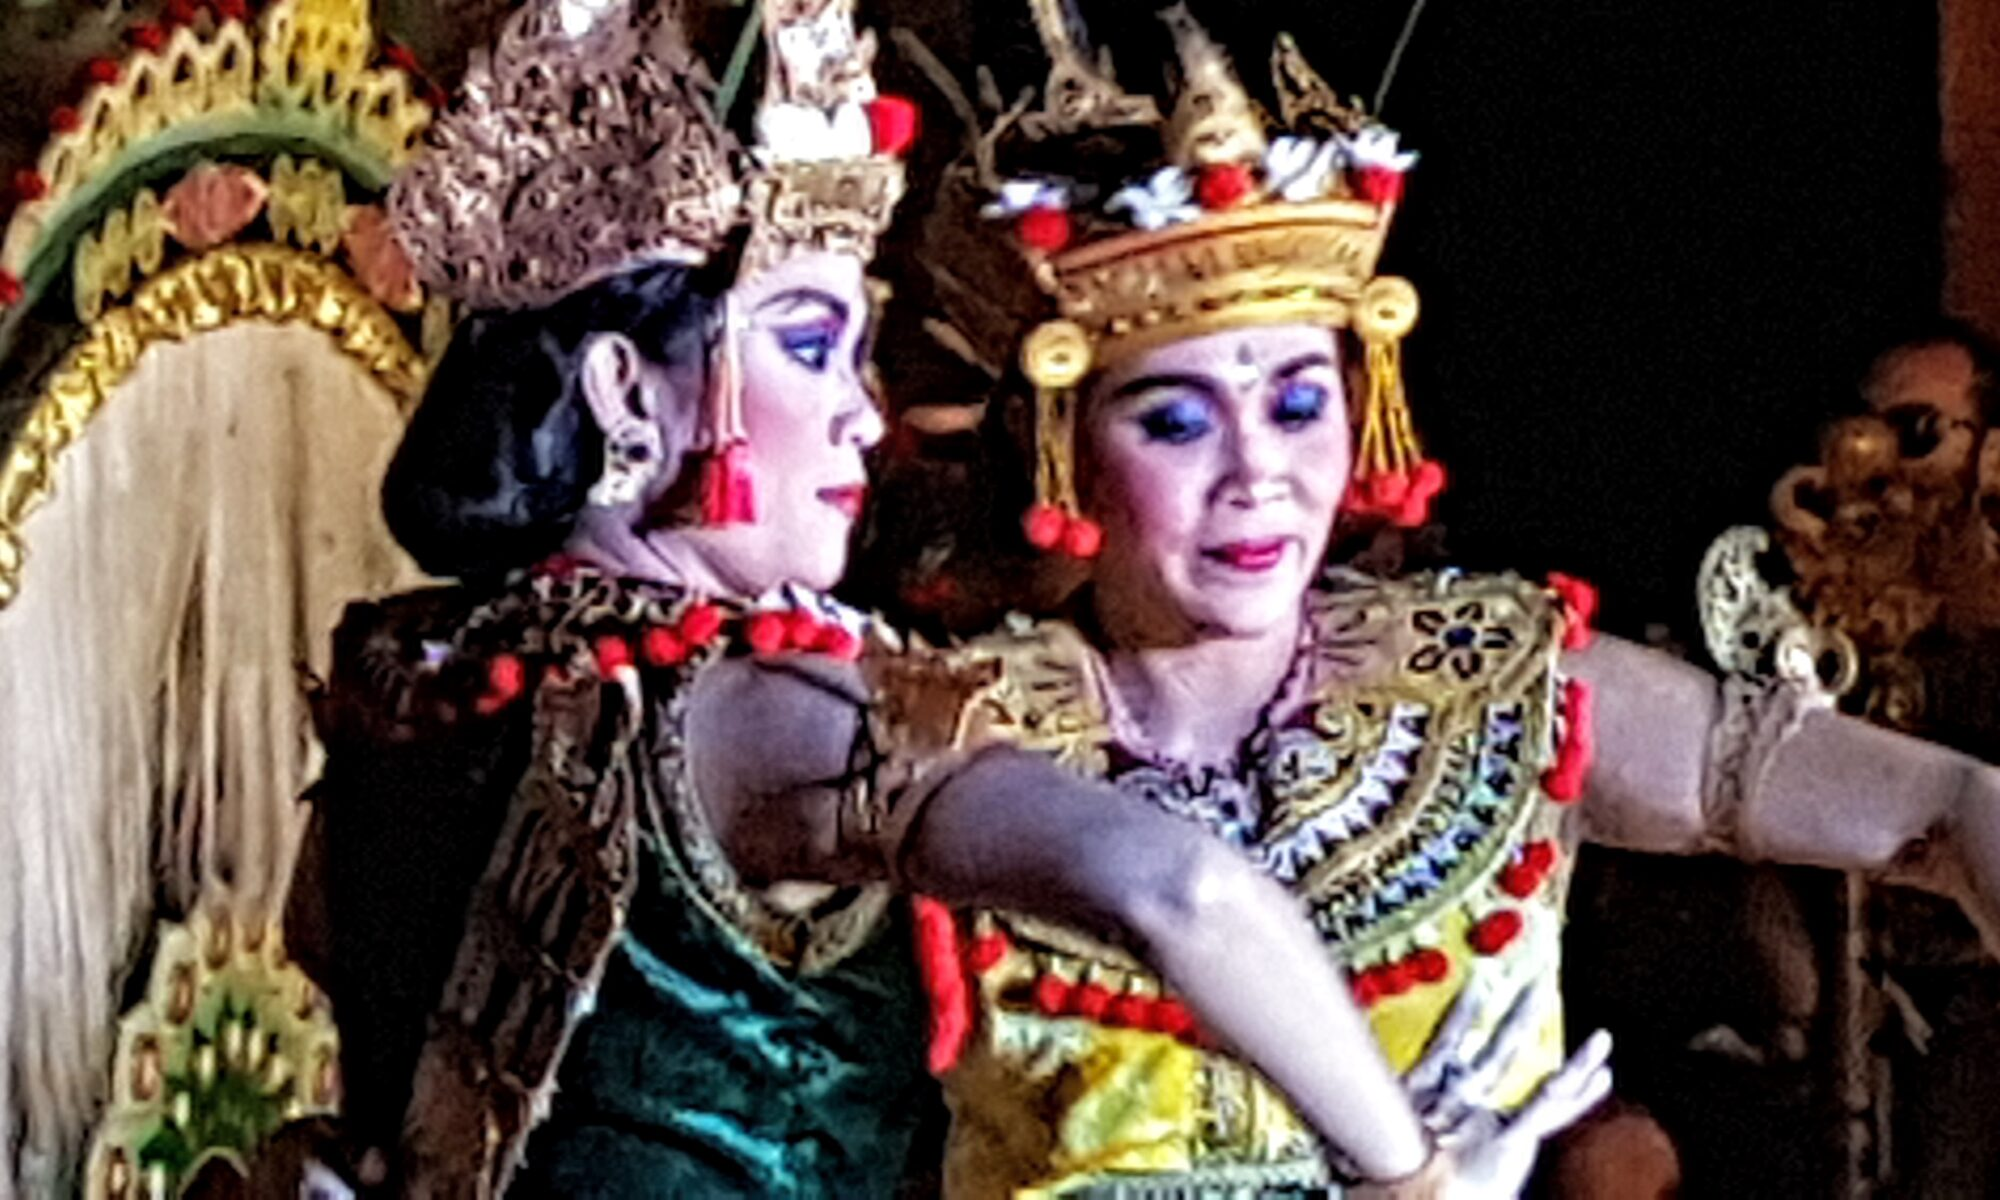 Balinese Dancers tell a Story Without Words